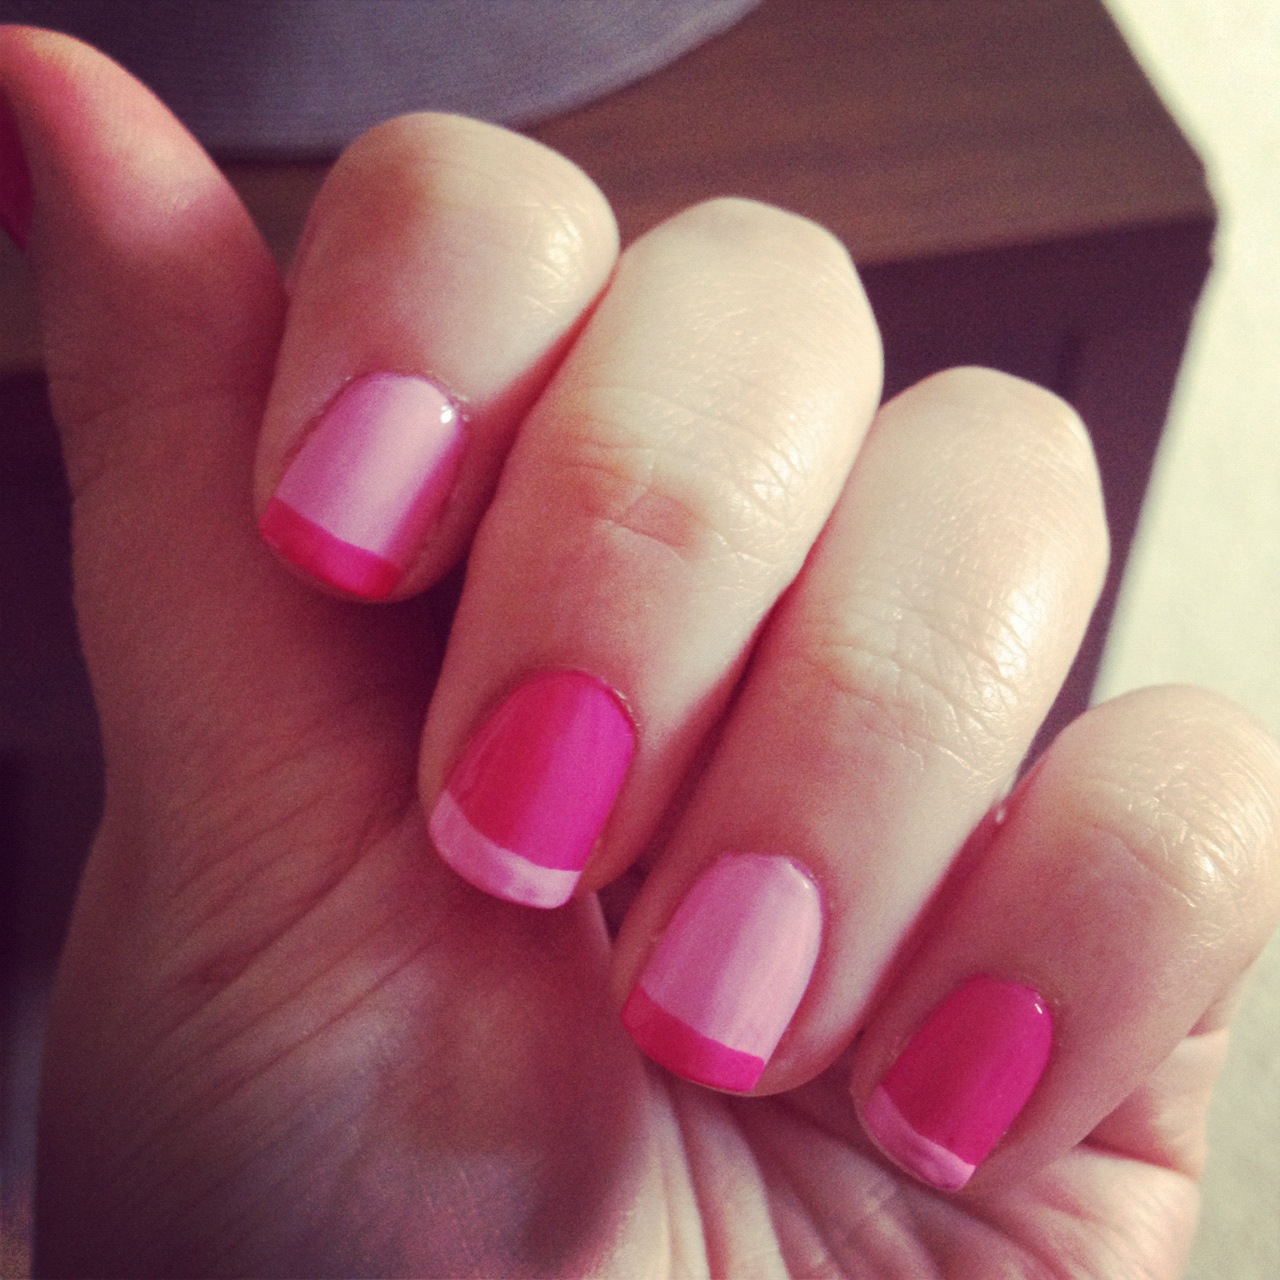 Contrasting Pinks Nail Design.